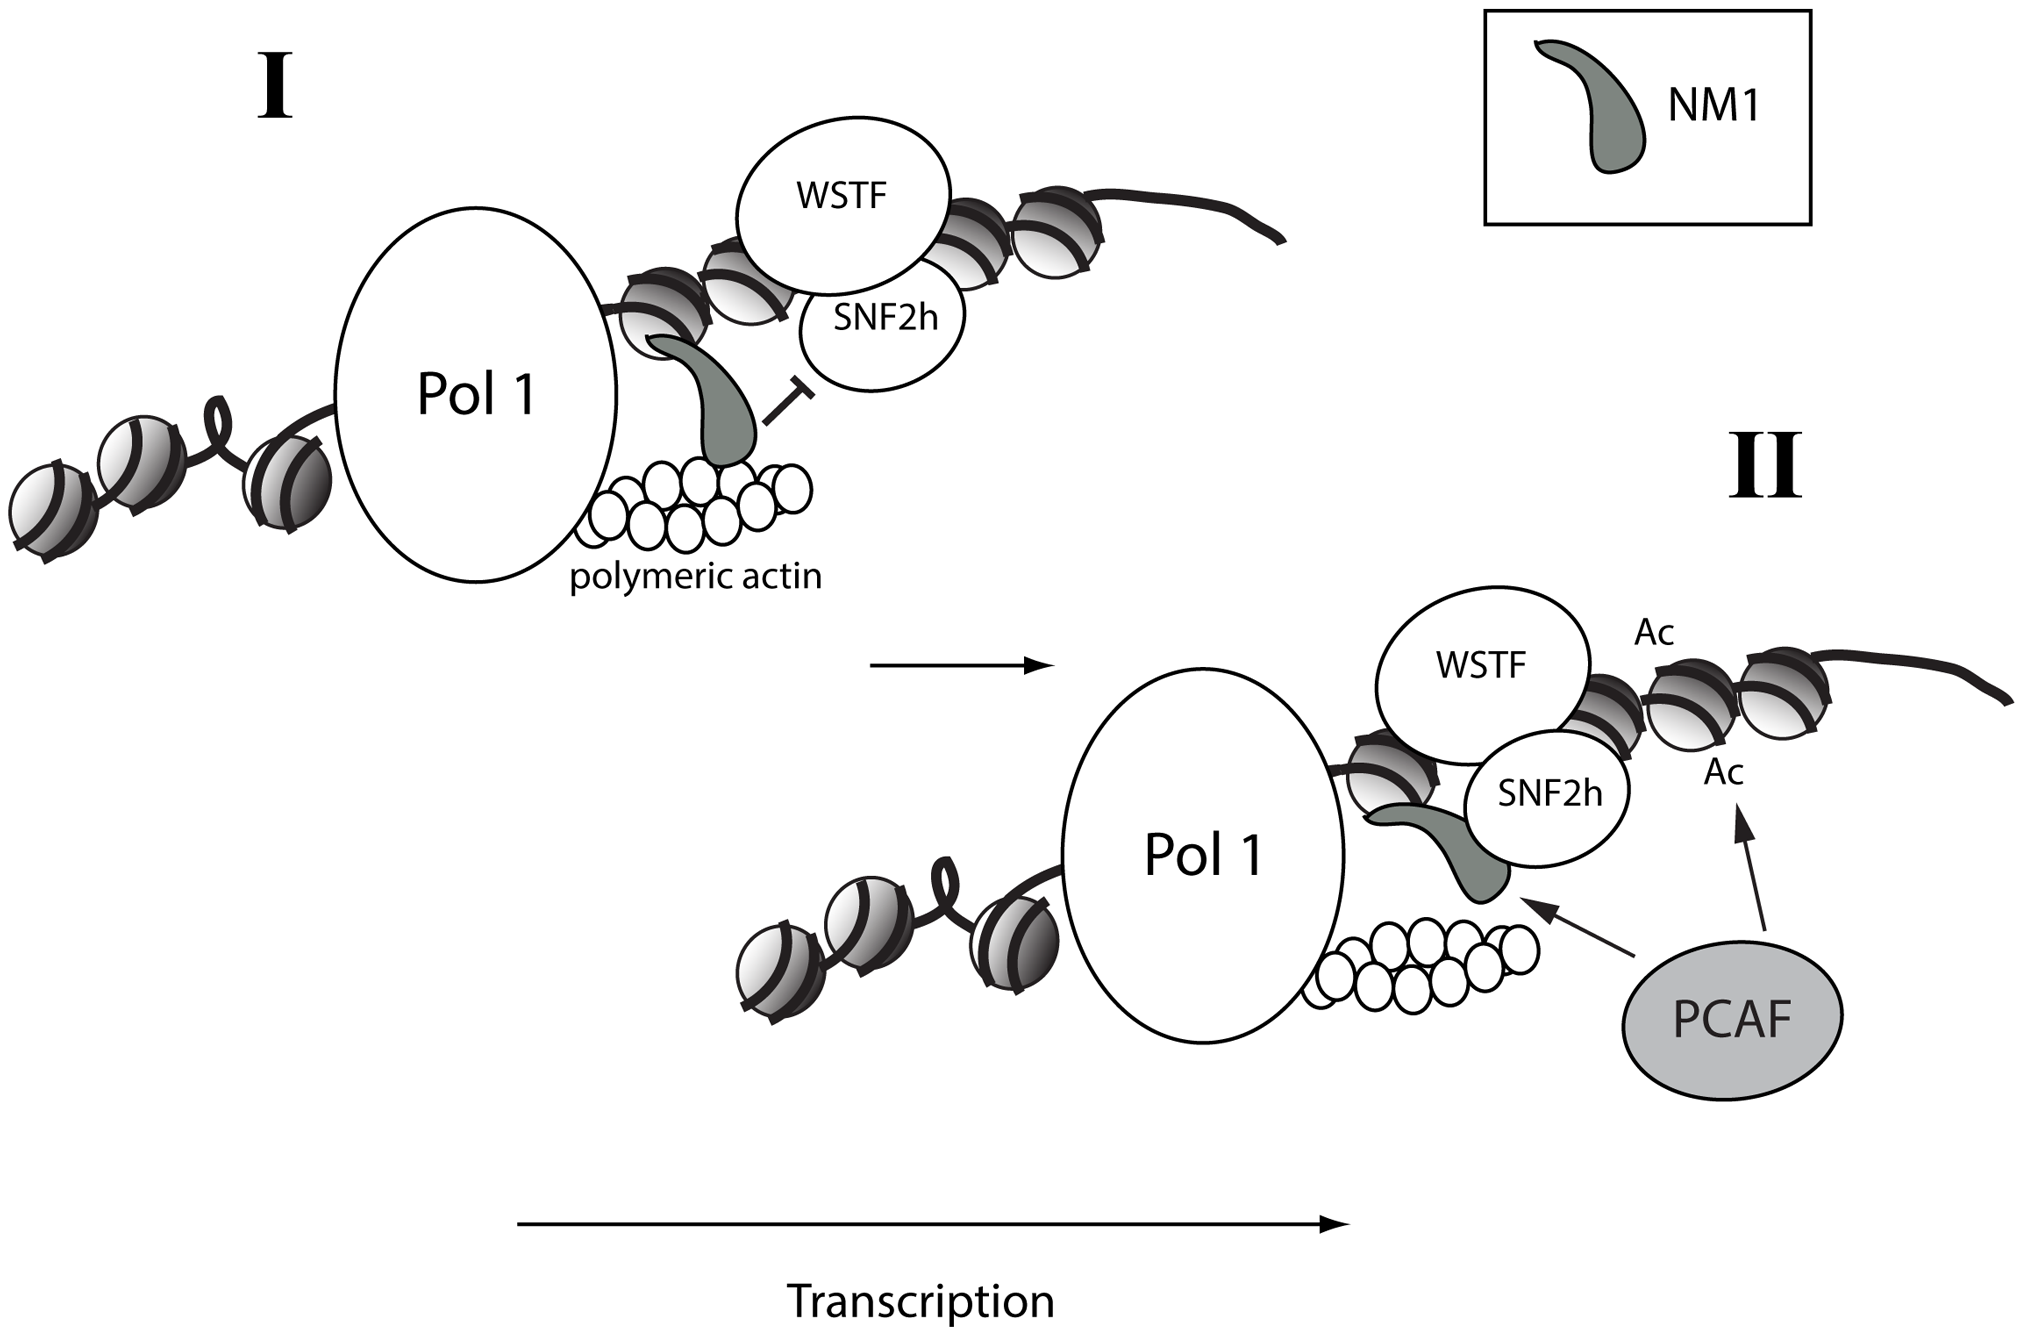 A speculative two-step model in which NM1 bridges the pol I machinery and chromatin <i>via</i> an interaction with SNF2h that competes with actin.